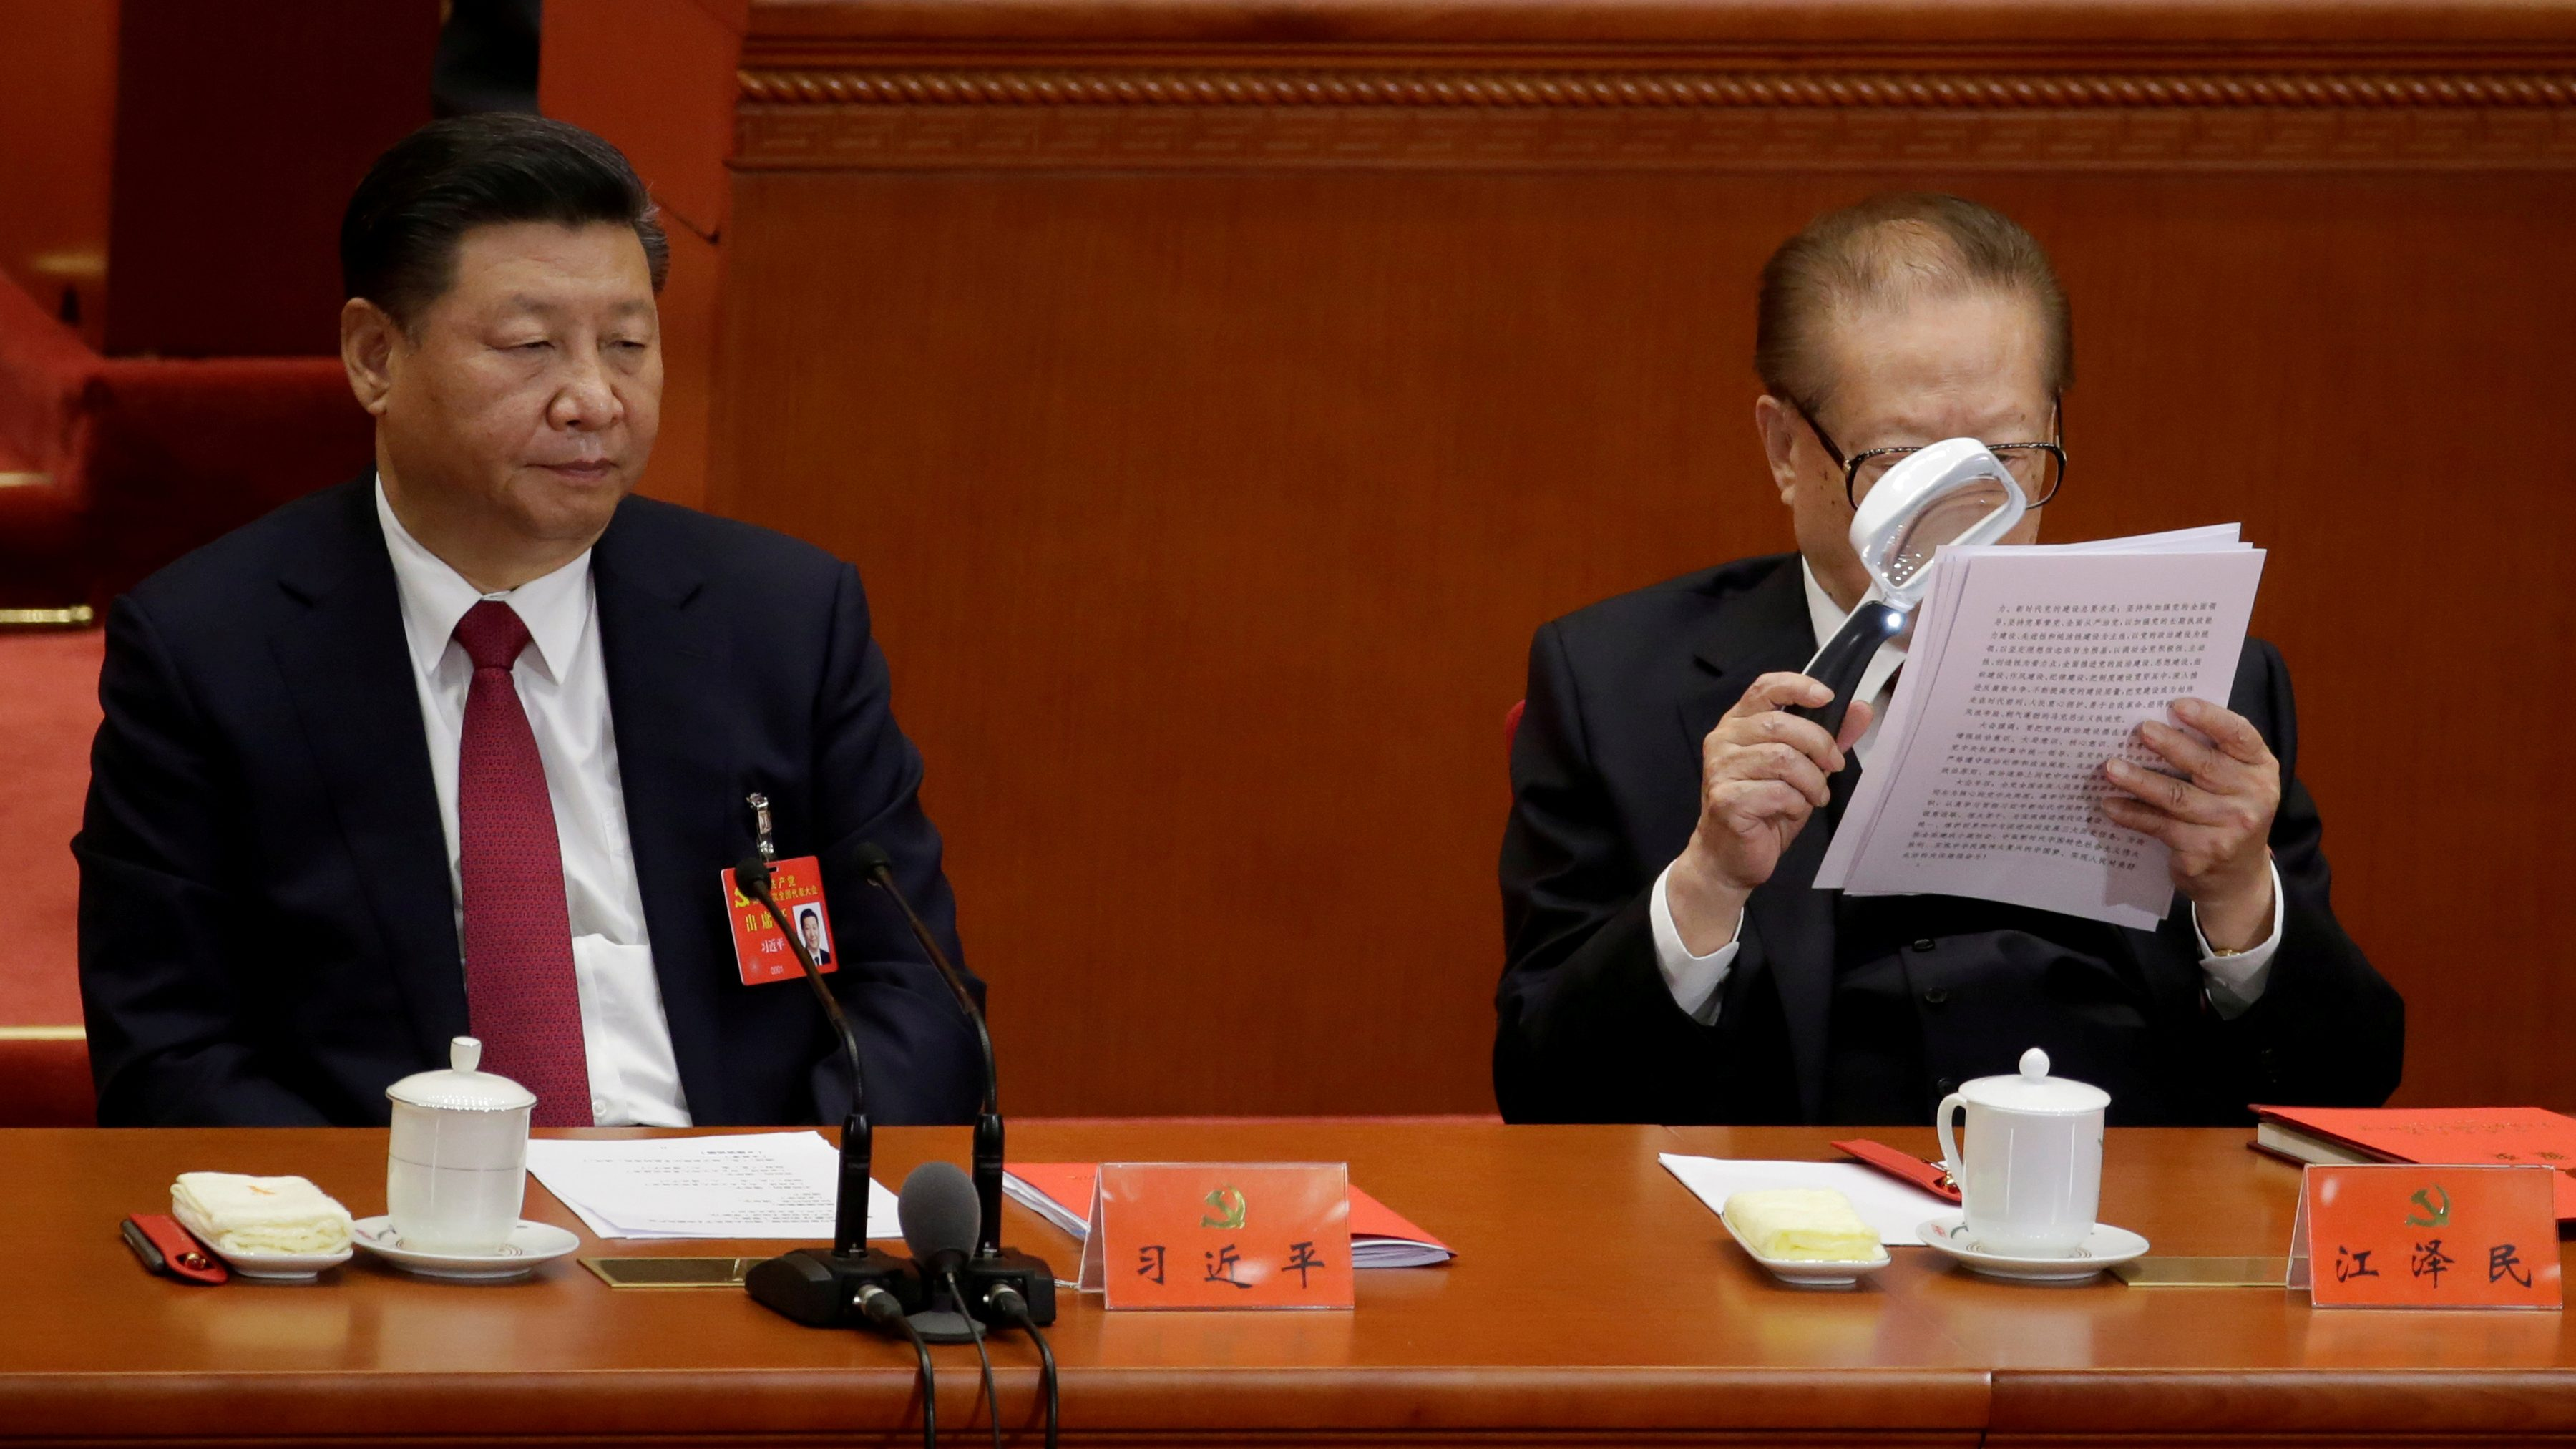 Chinese President Xi Jinping (L) and former Chinese President Jiang Zemin are seen during the closing session of the 19th National Congress of the Communist Party of China at the Great Hall of the People, in Beijing, China October 24, 2017. REUTERS/Jason Lee     TPX IMAGES OF THE DAY - RC1A8CFD4530